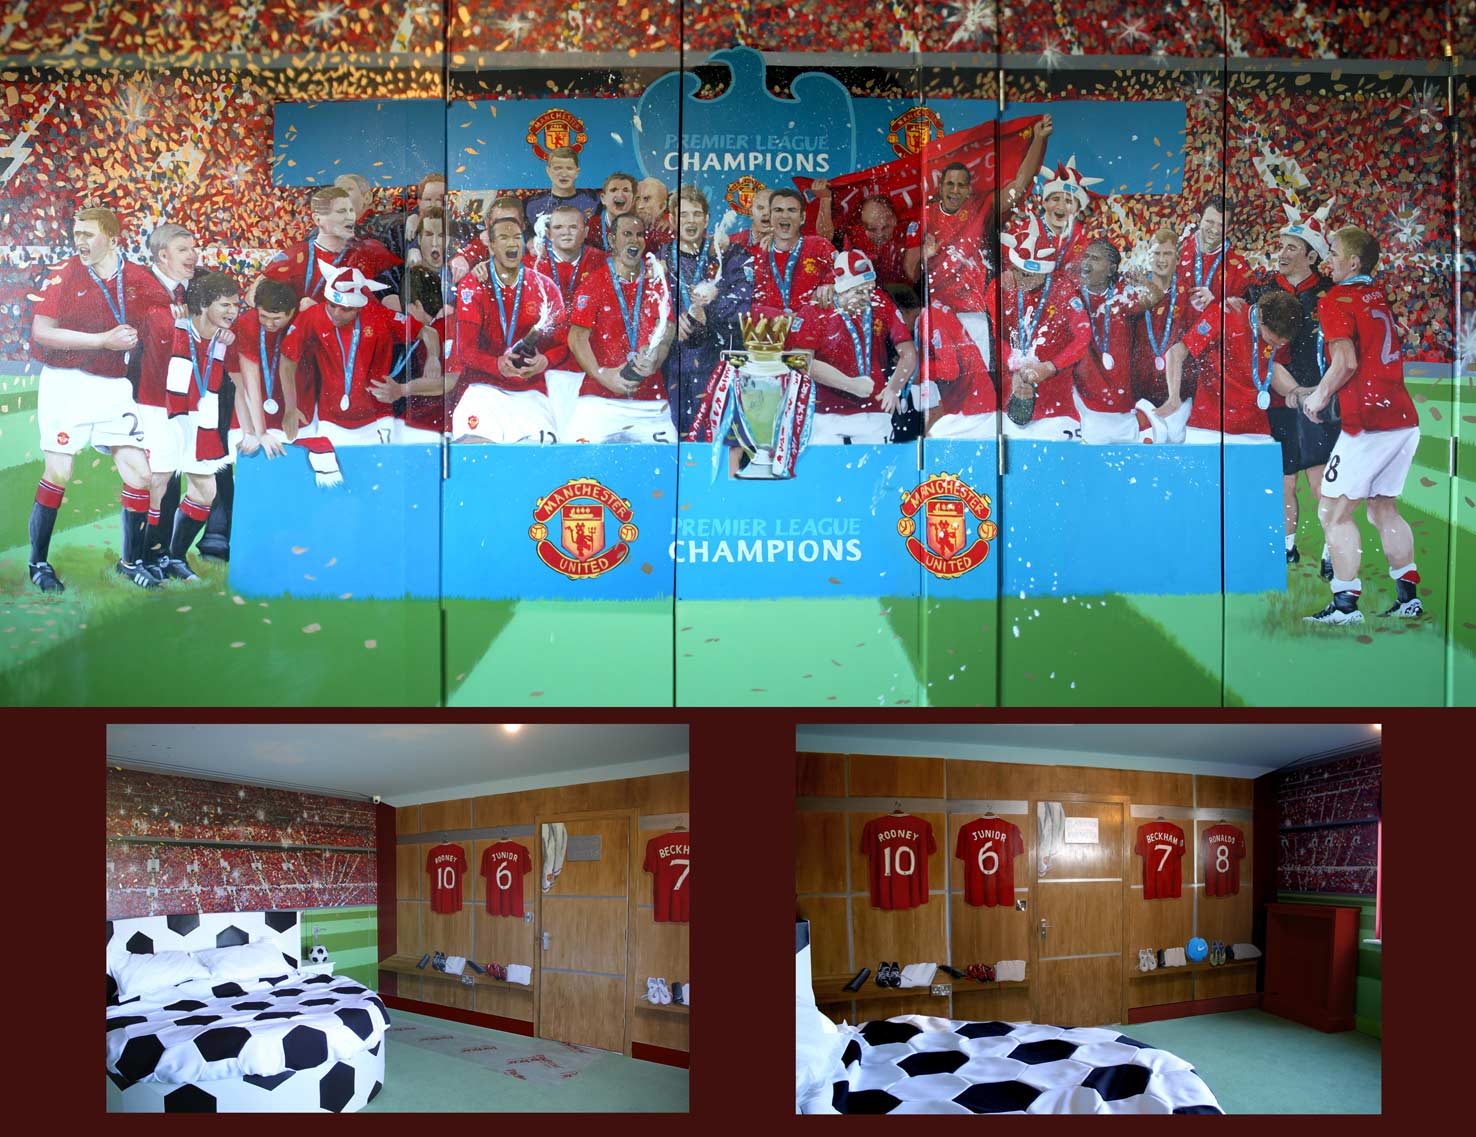 Football wall murals for kids home design charming mural alt ambiente spanish mural alt locker room mural alt football u2026 idea amipublicfo Images